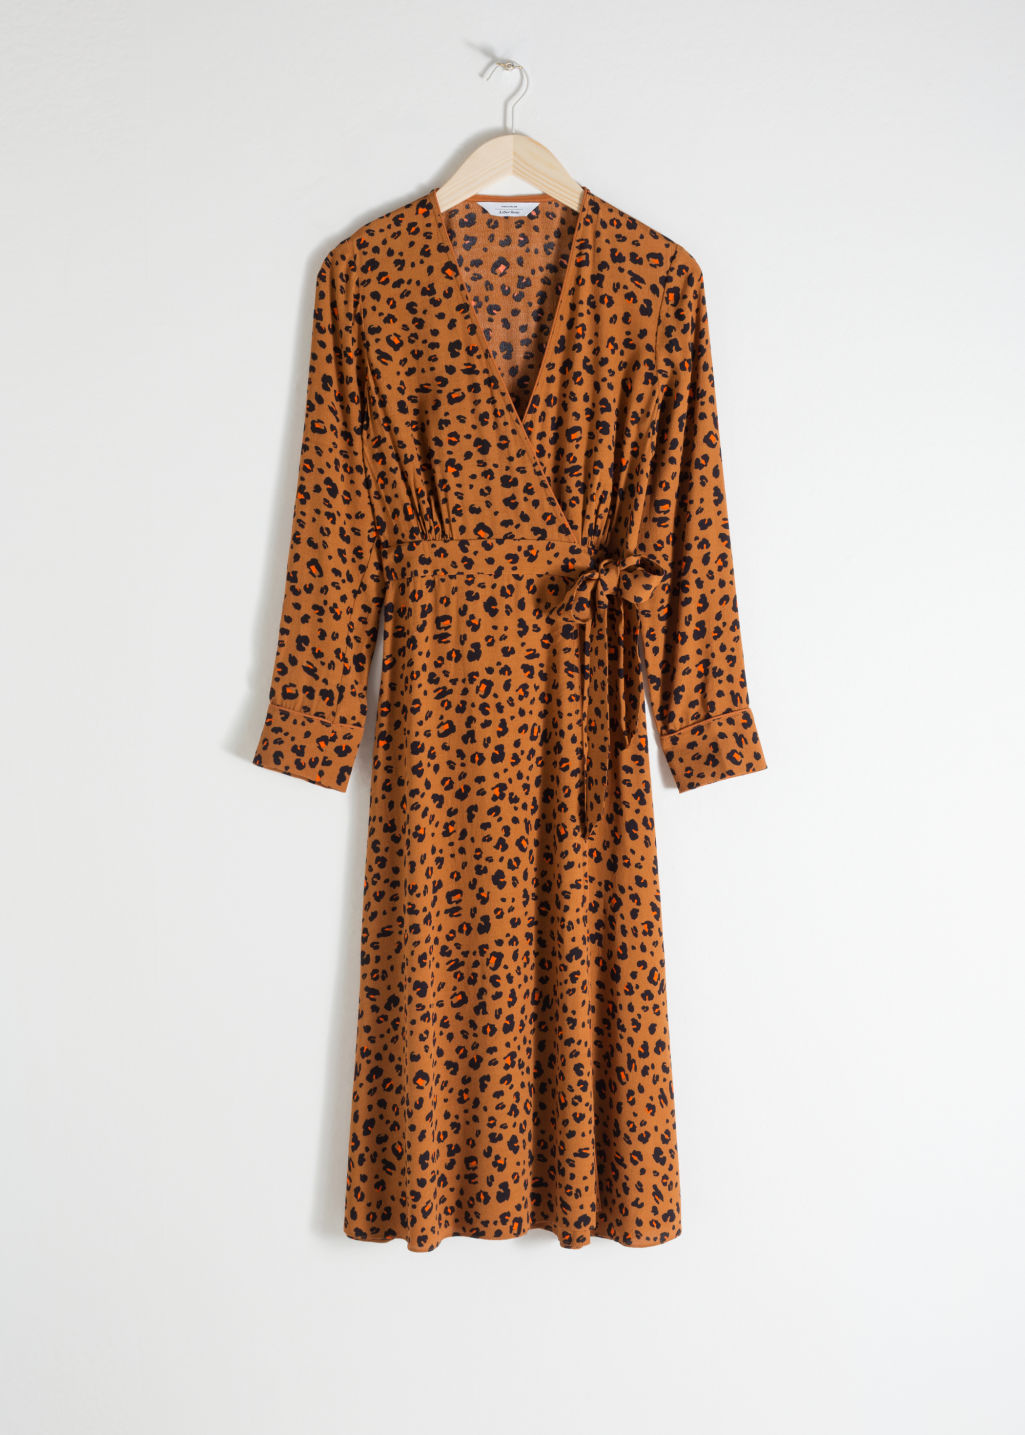 premier taux 5ec83 06b3b Leopard Print Wrap Dress - Leopard Print - Wrap dresses - & Other Stories